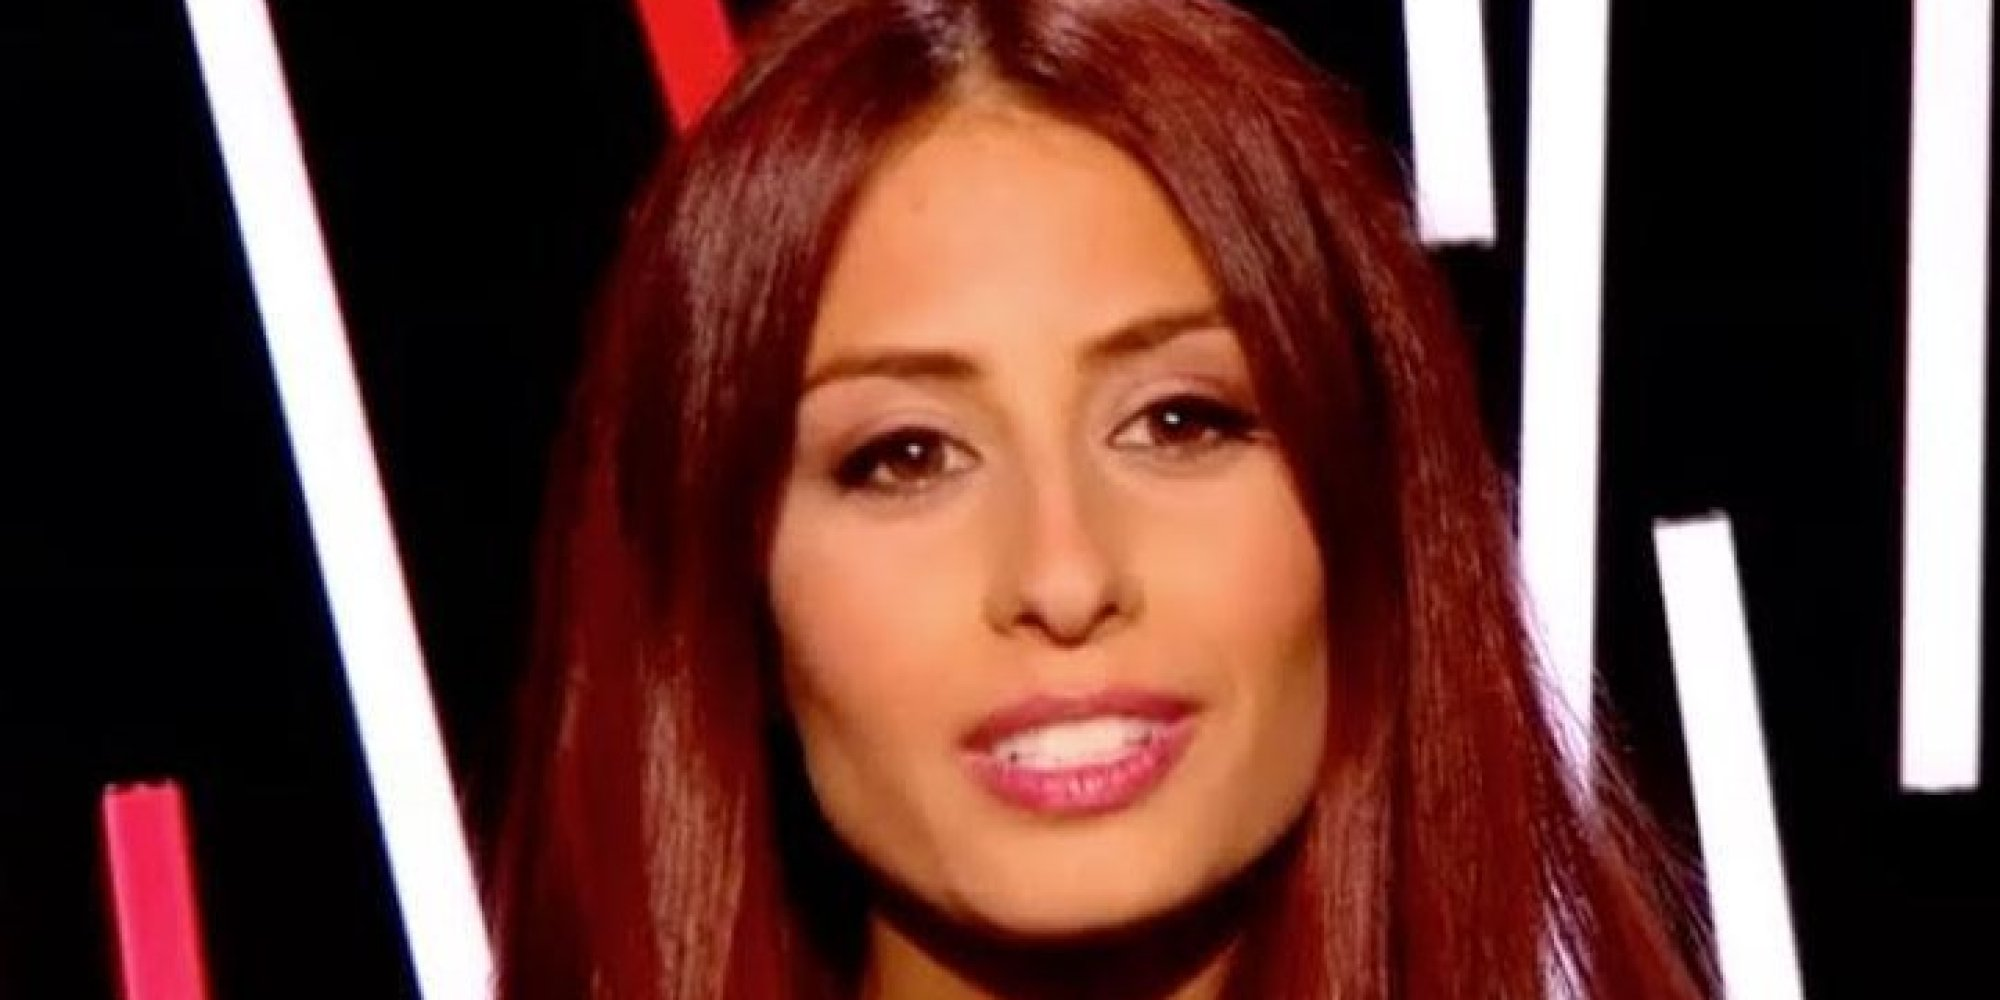 The Voice France La Chanteuse Libanaise Hiba Tawaji